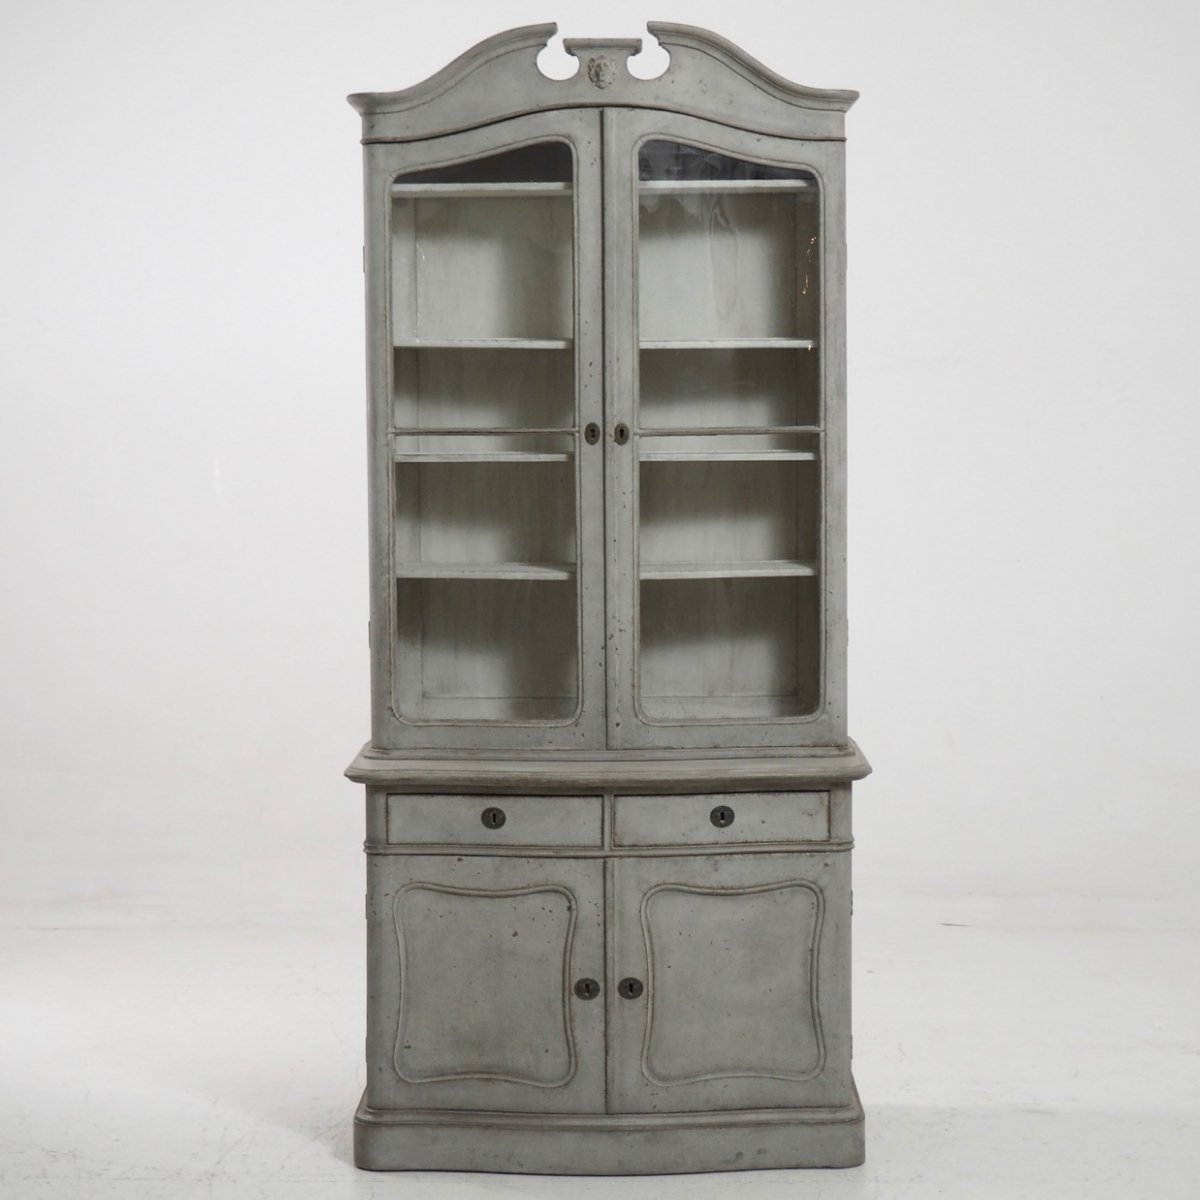 Antique 2-Piece Vitrine Cabinet - Antique 2-Piece Vitrine Cabinet For Sale At Pamono